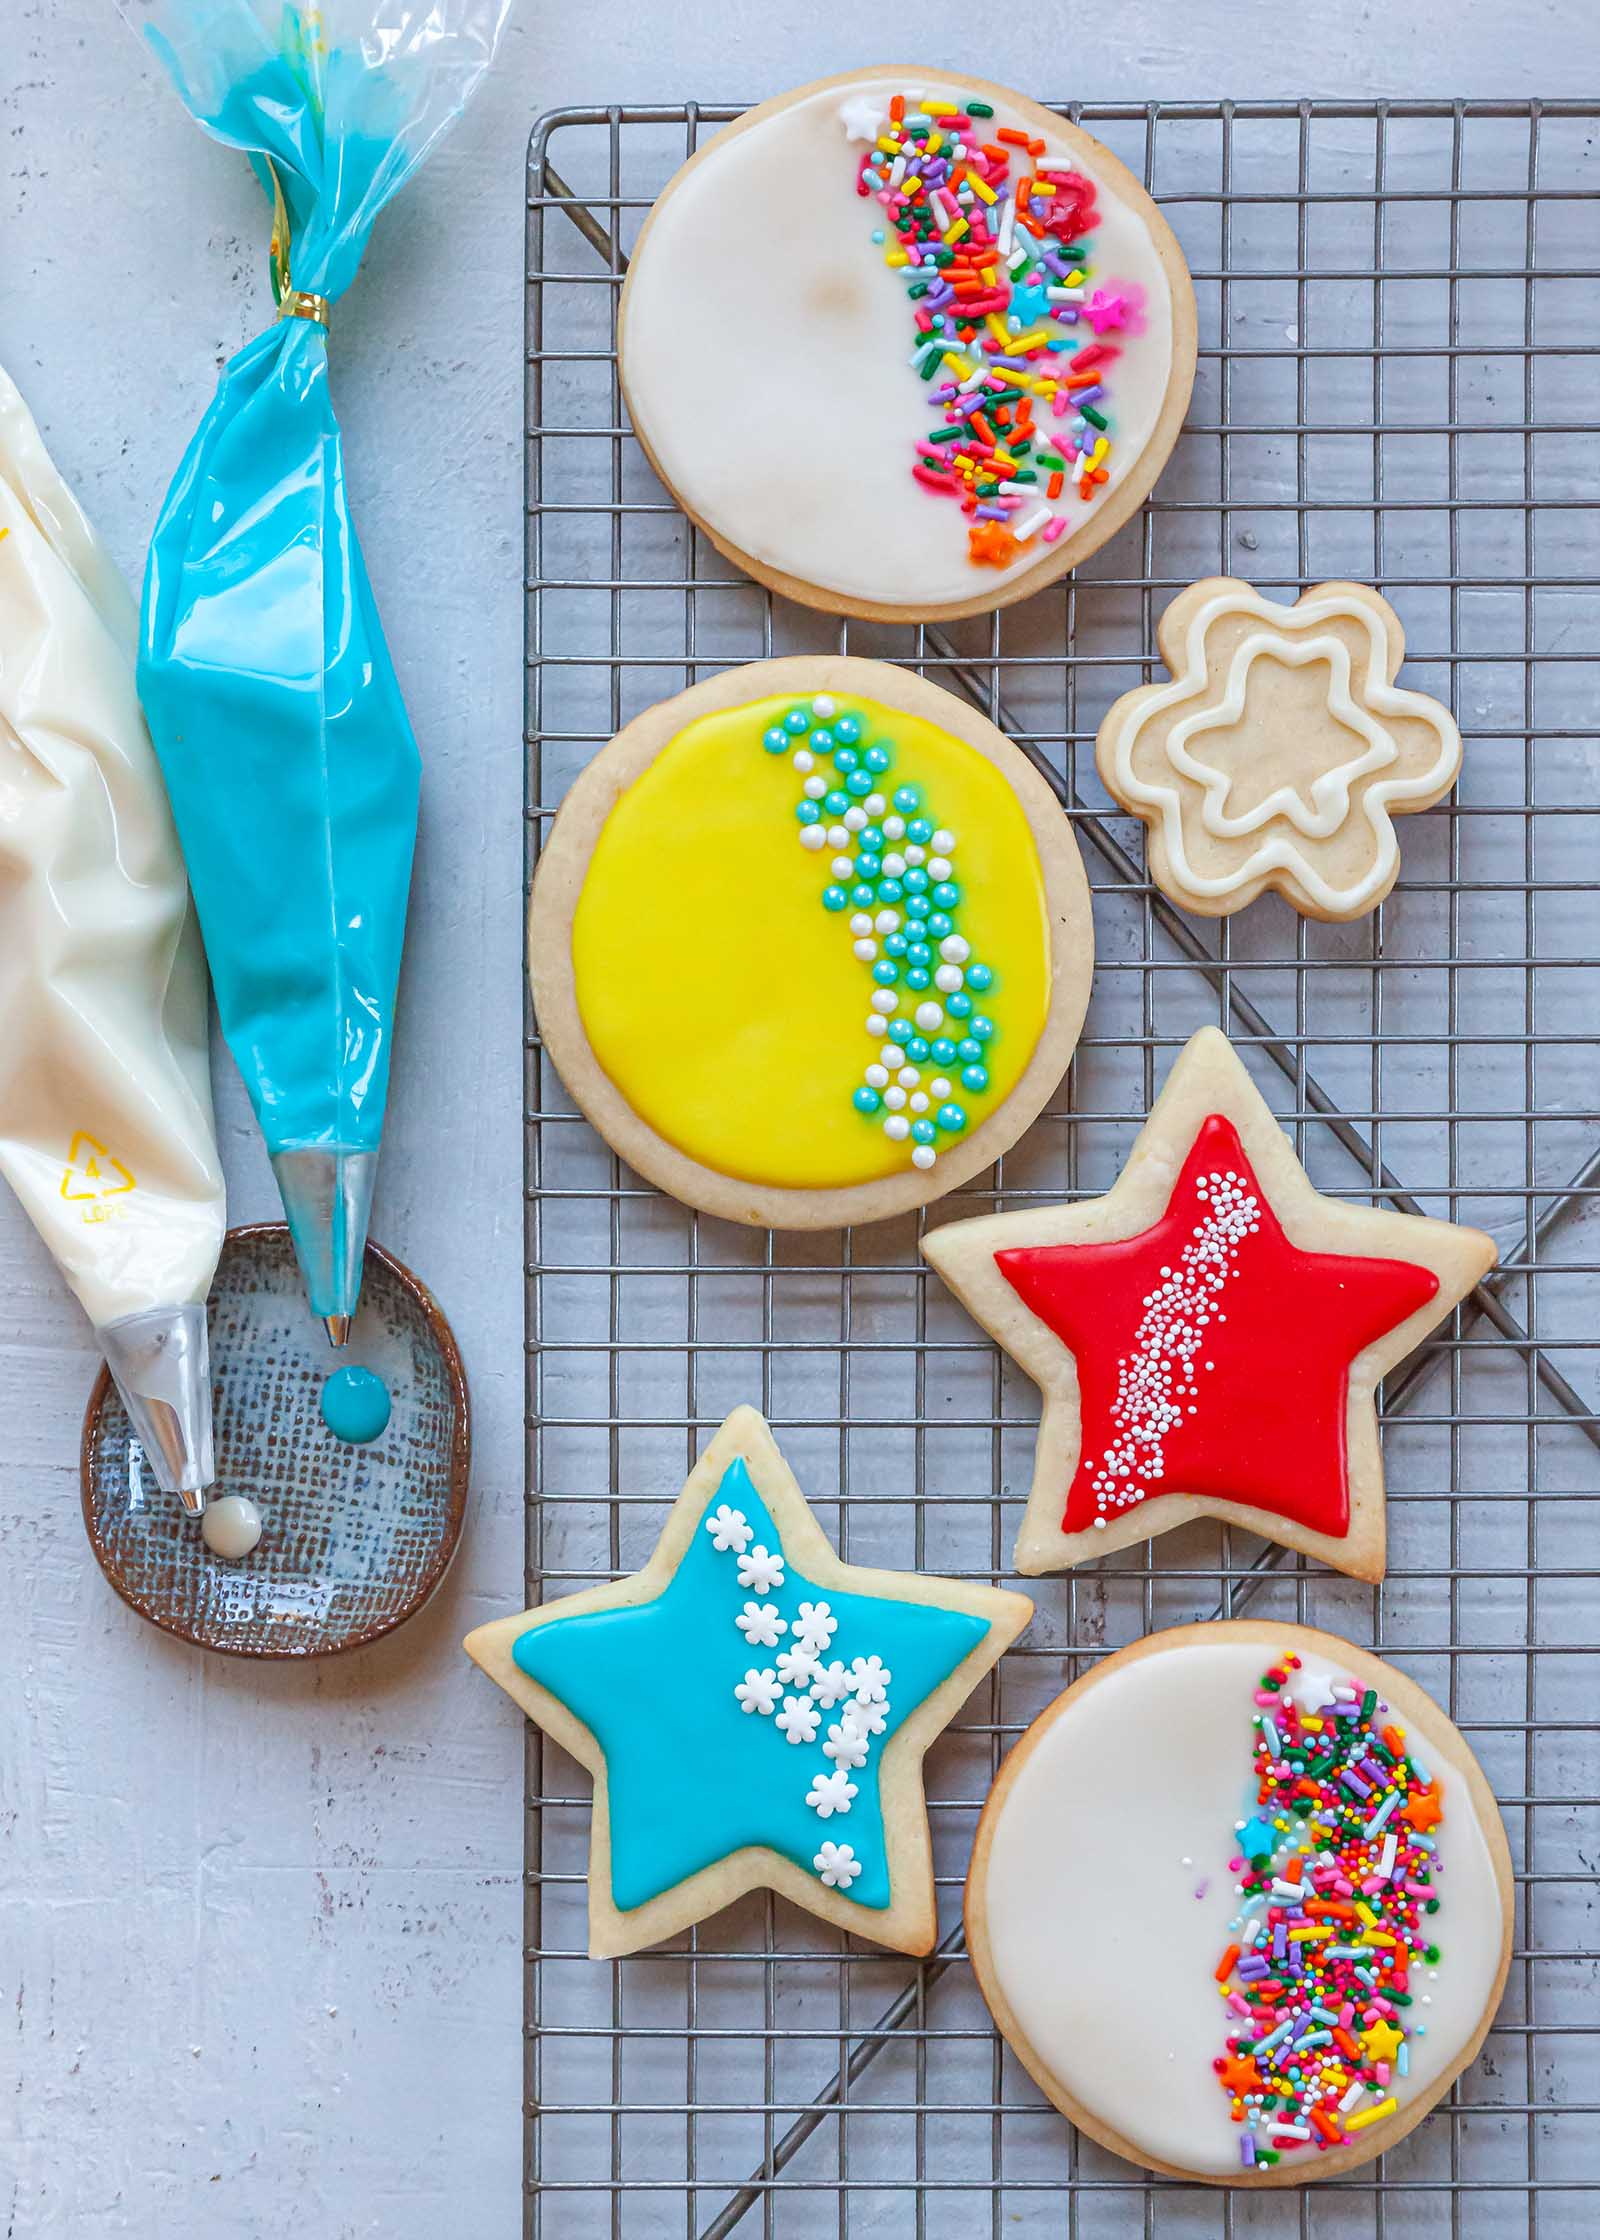 Two piping bags filled with Royal icing are set next to a cooling rack with decorated sugar cookies on it.